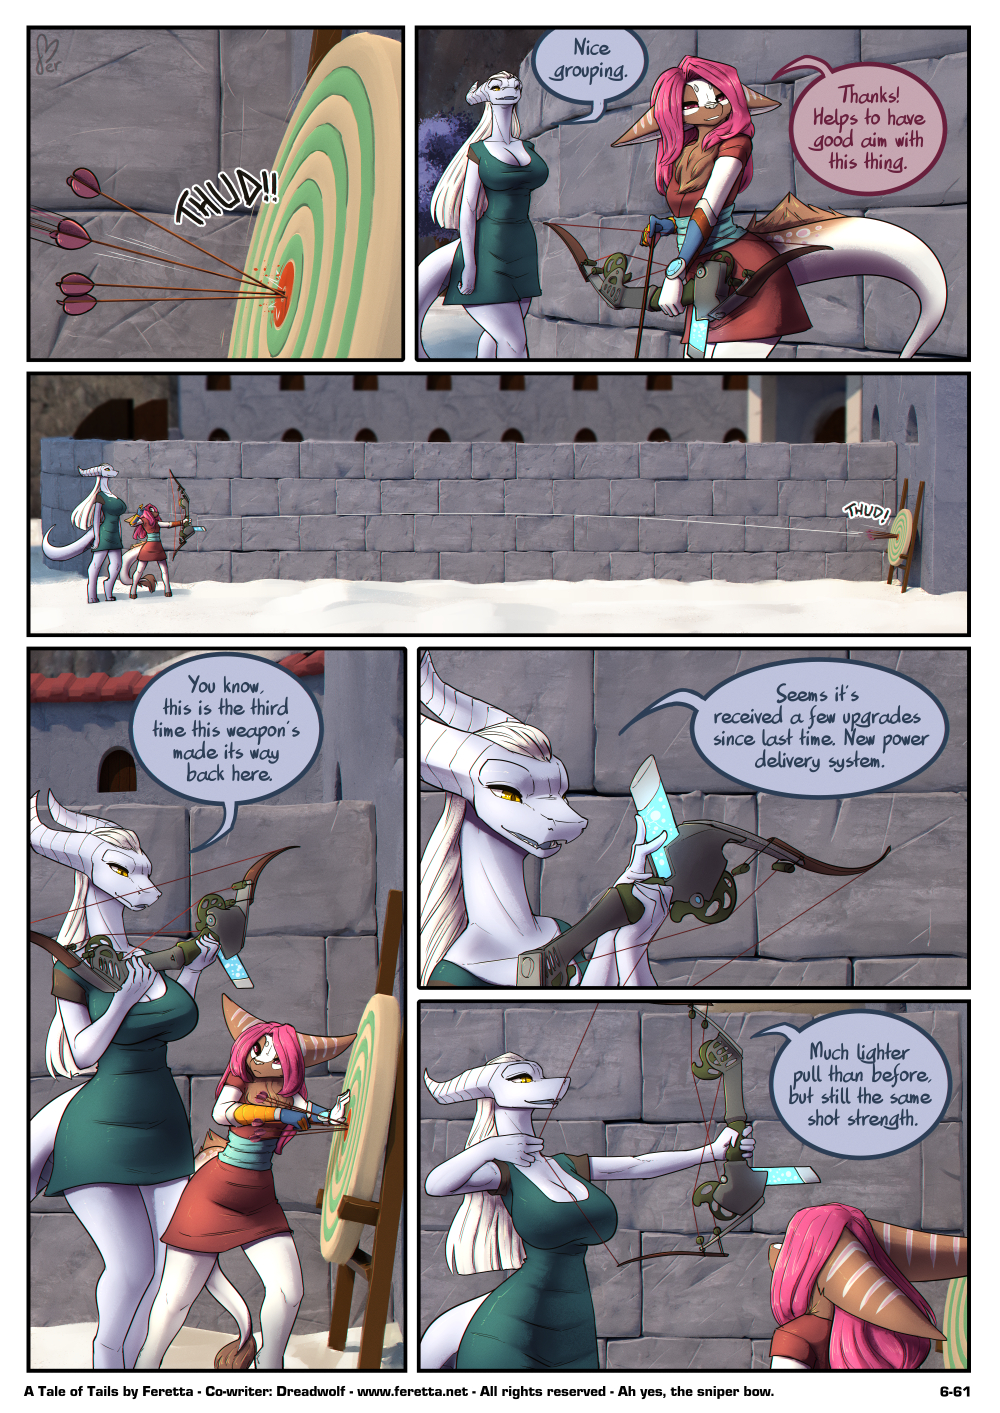 A Tale of Tails, 6-61